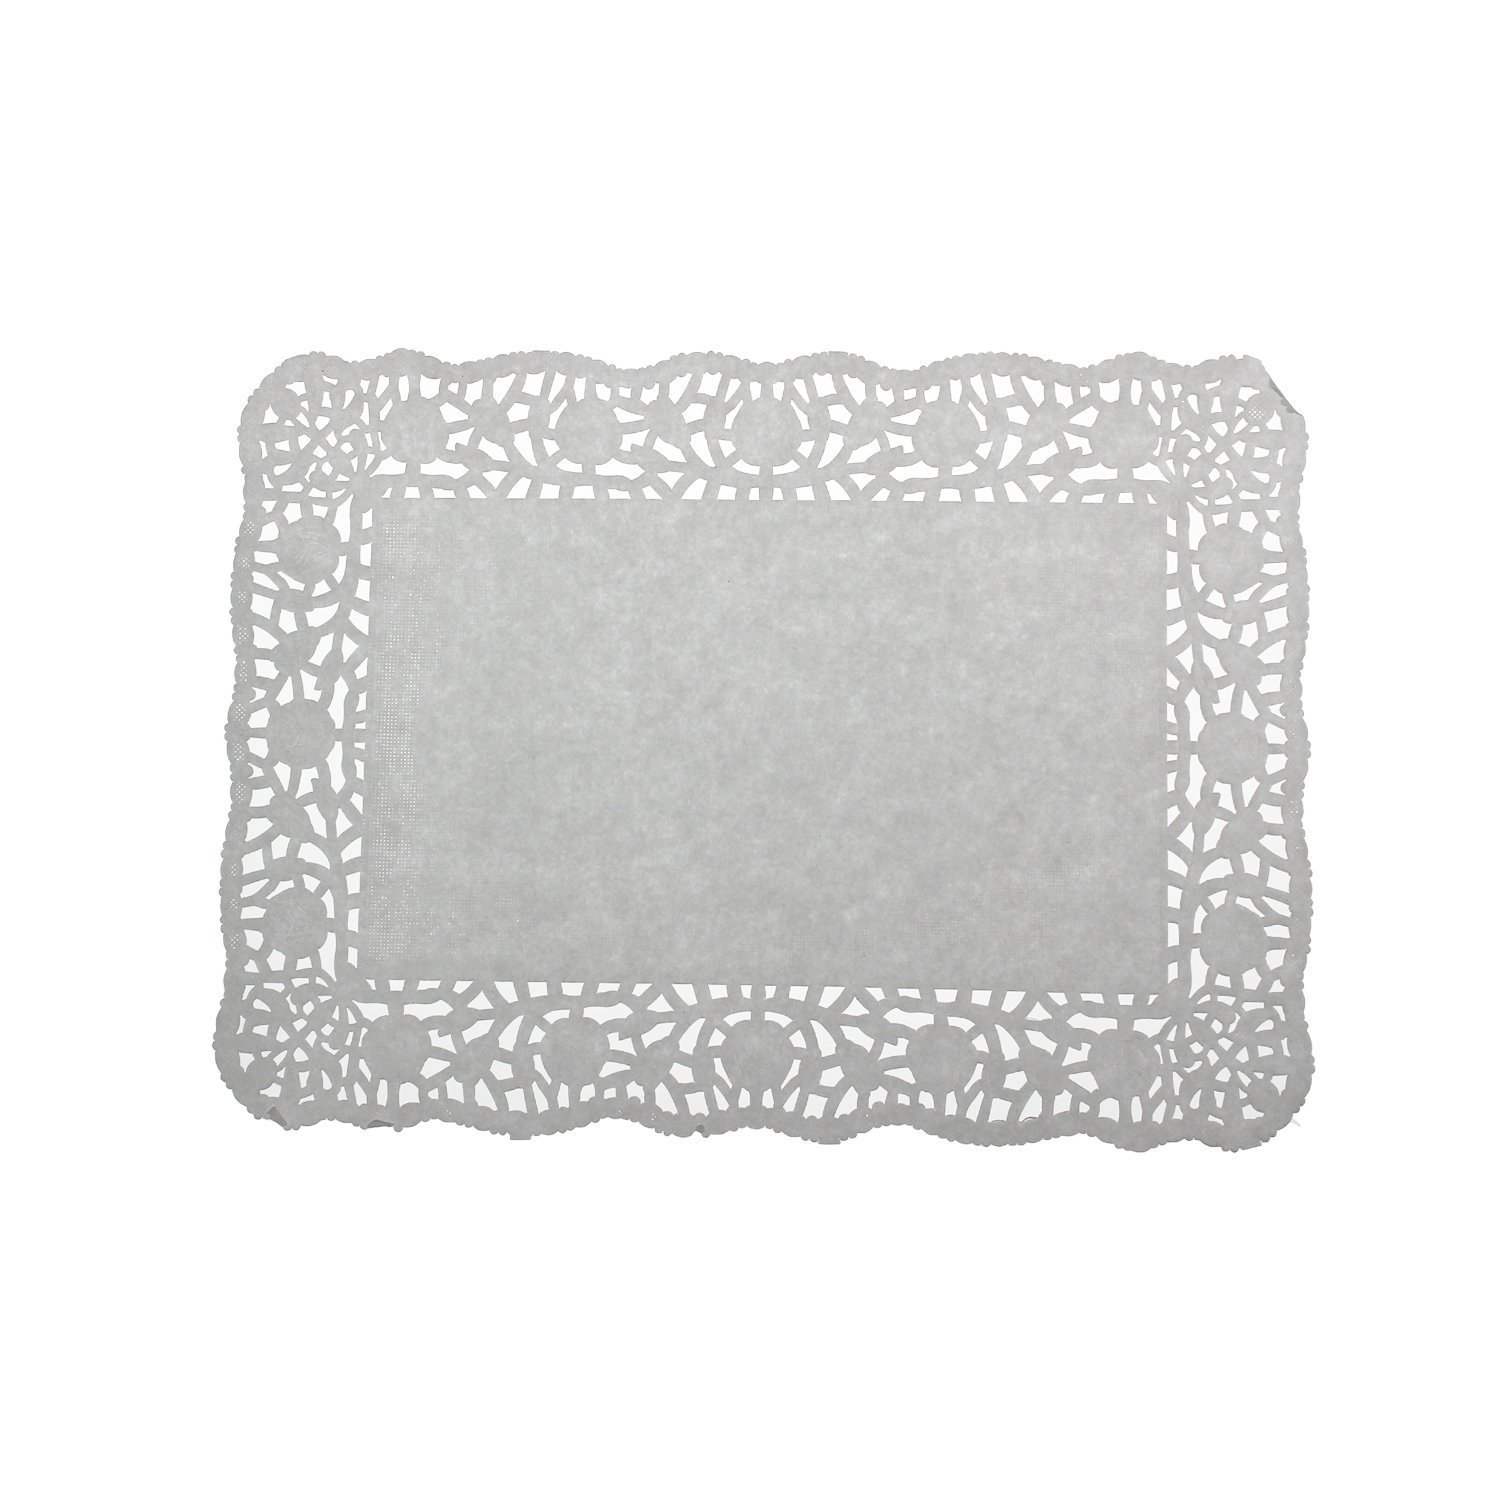 """LJY 100 Pieces White Lace Rectangle Paper Doilies Cake Packaging Pads Wedding Tableware Decoration (7"""" x 9.5"""")"""